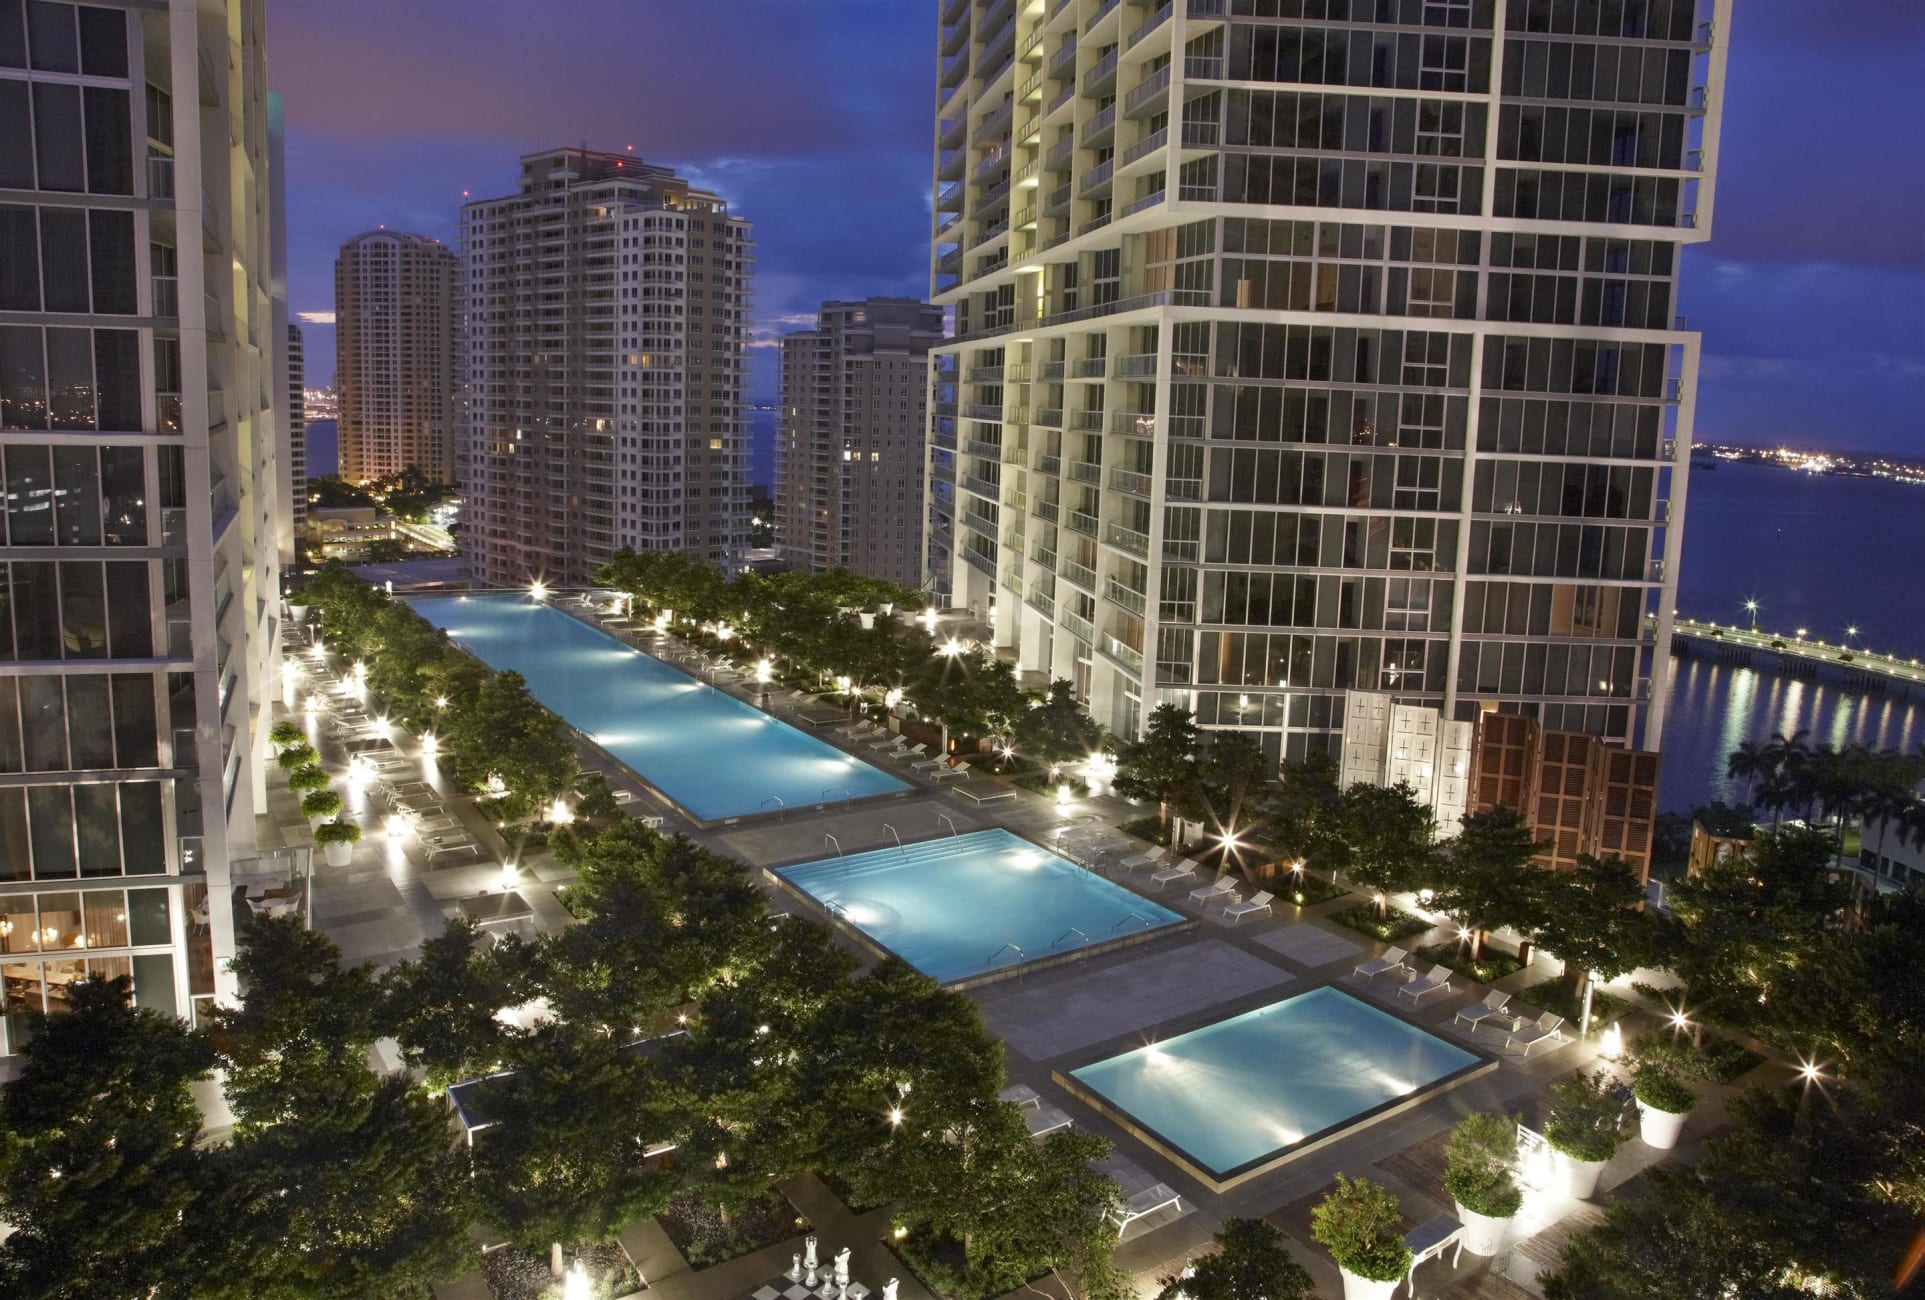 Miami Hotels Hotels Price Expected